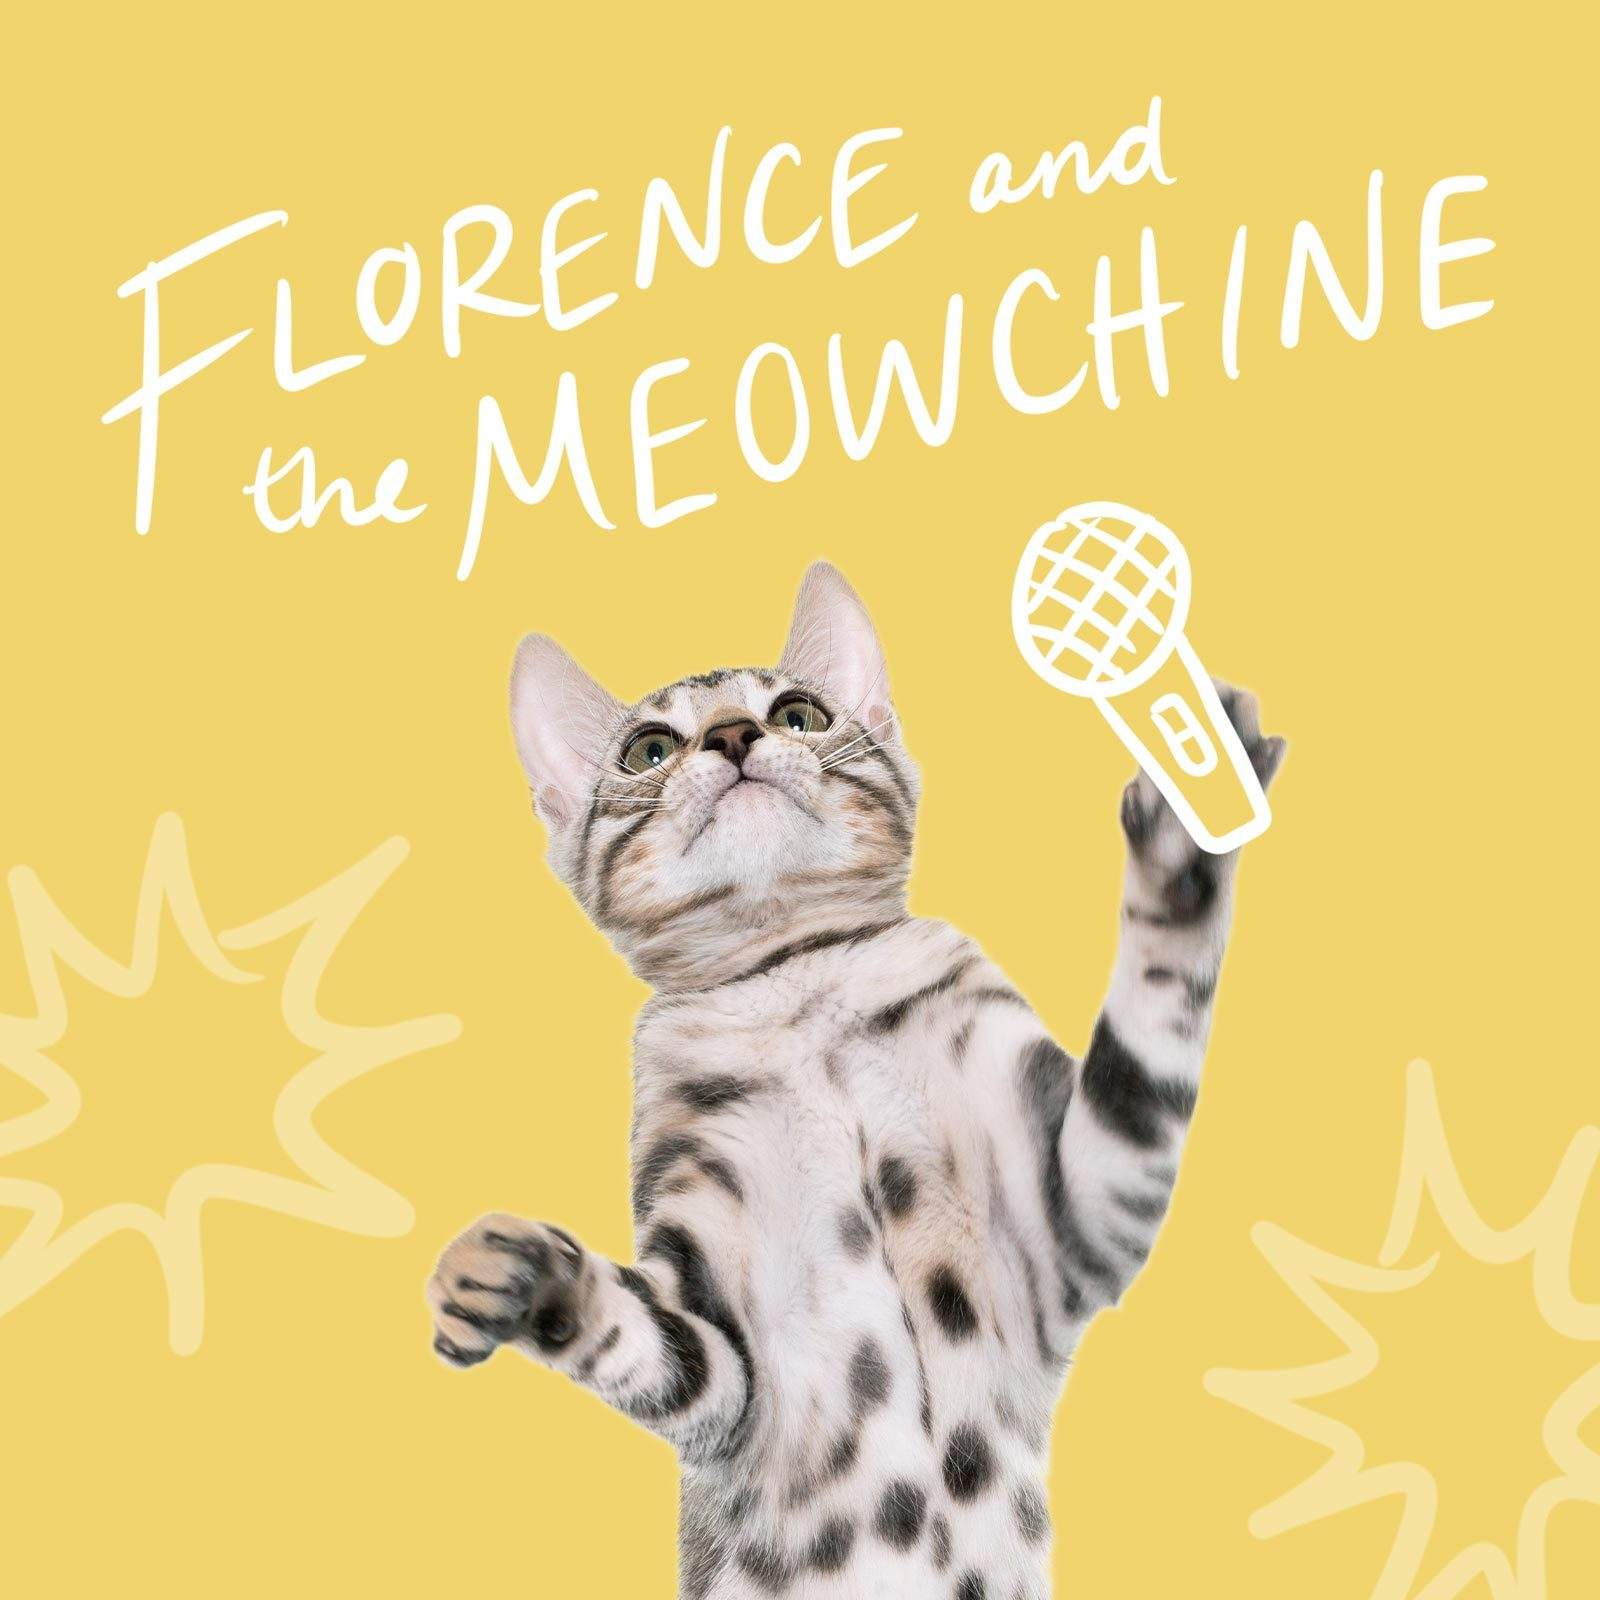 Cat holding a microphone called Florence and the Meow-chine